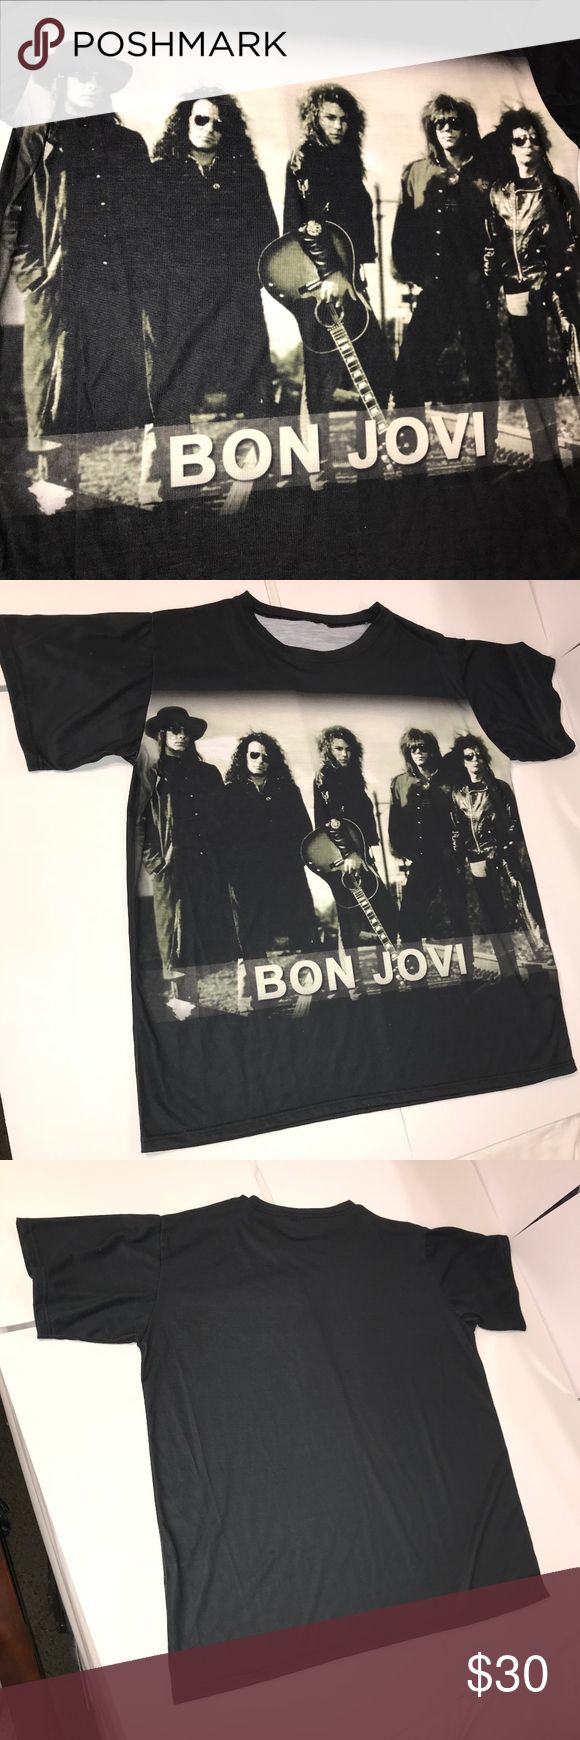 kenneth cole reaction shoes up in smoke tour concert t-shirt bon